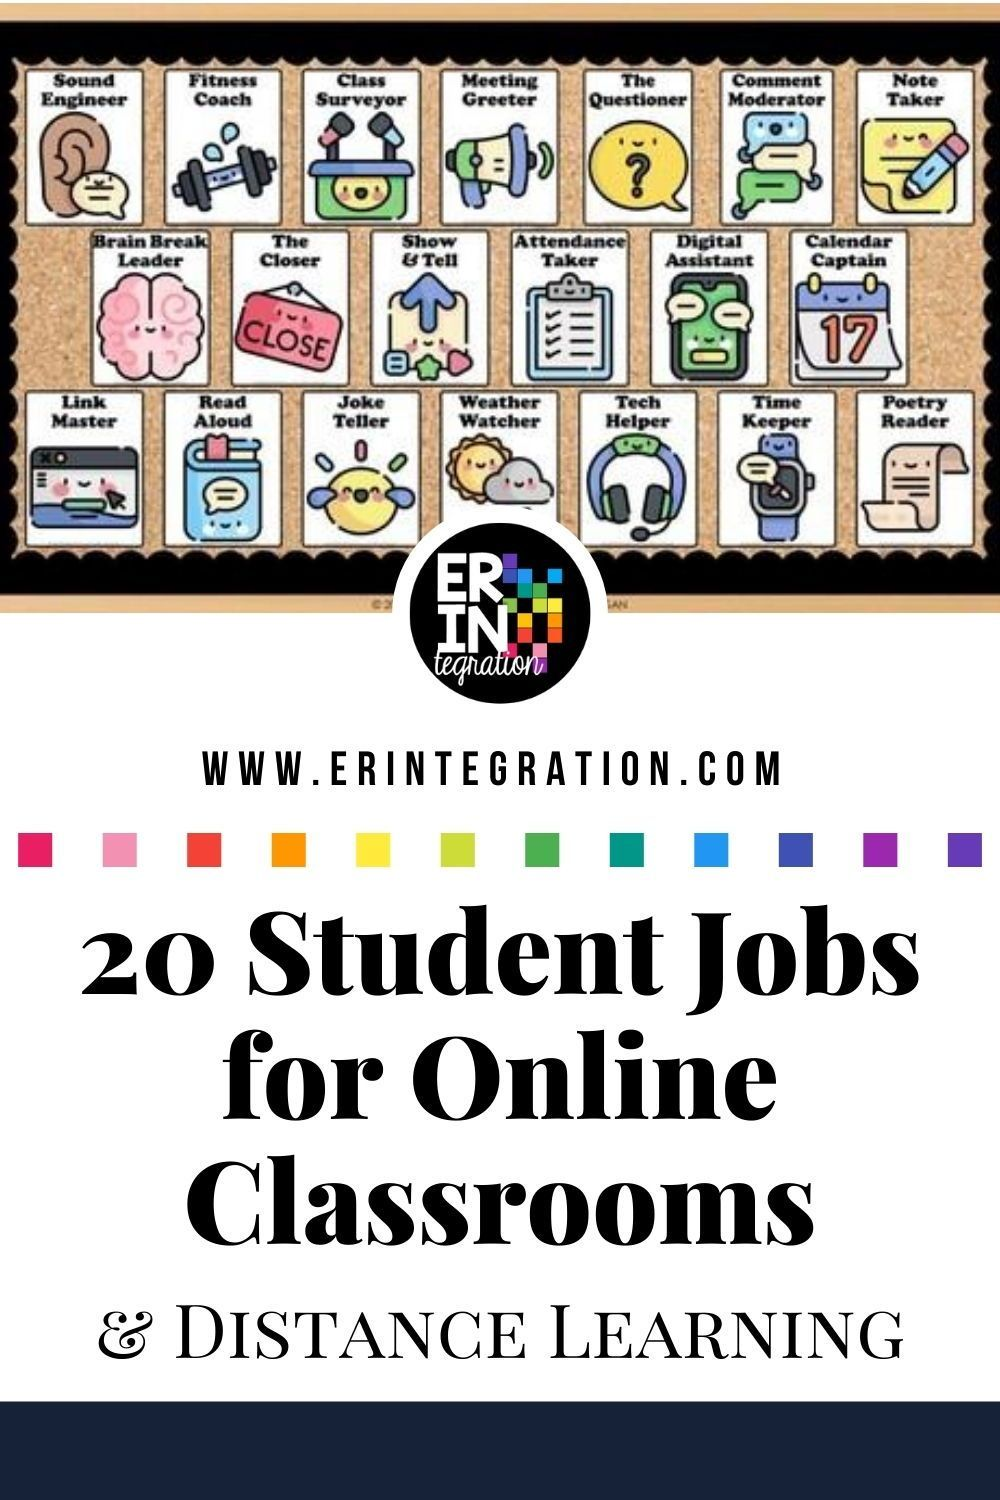 Virtual Jobs for Online Classrooms and Distance Learning